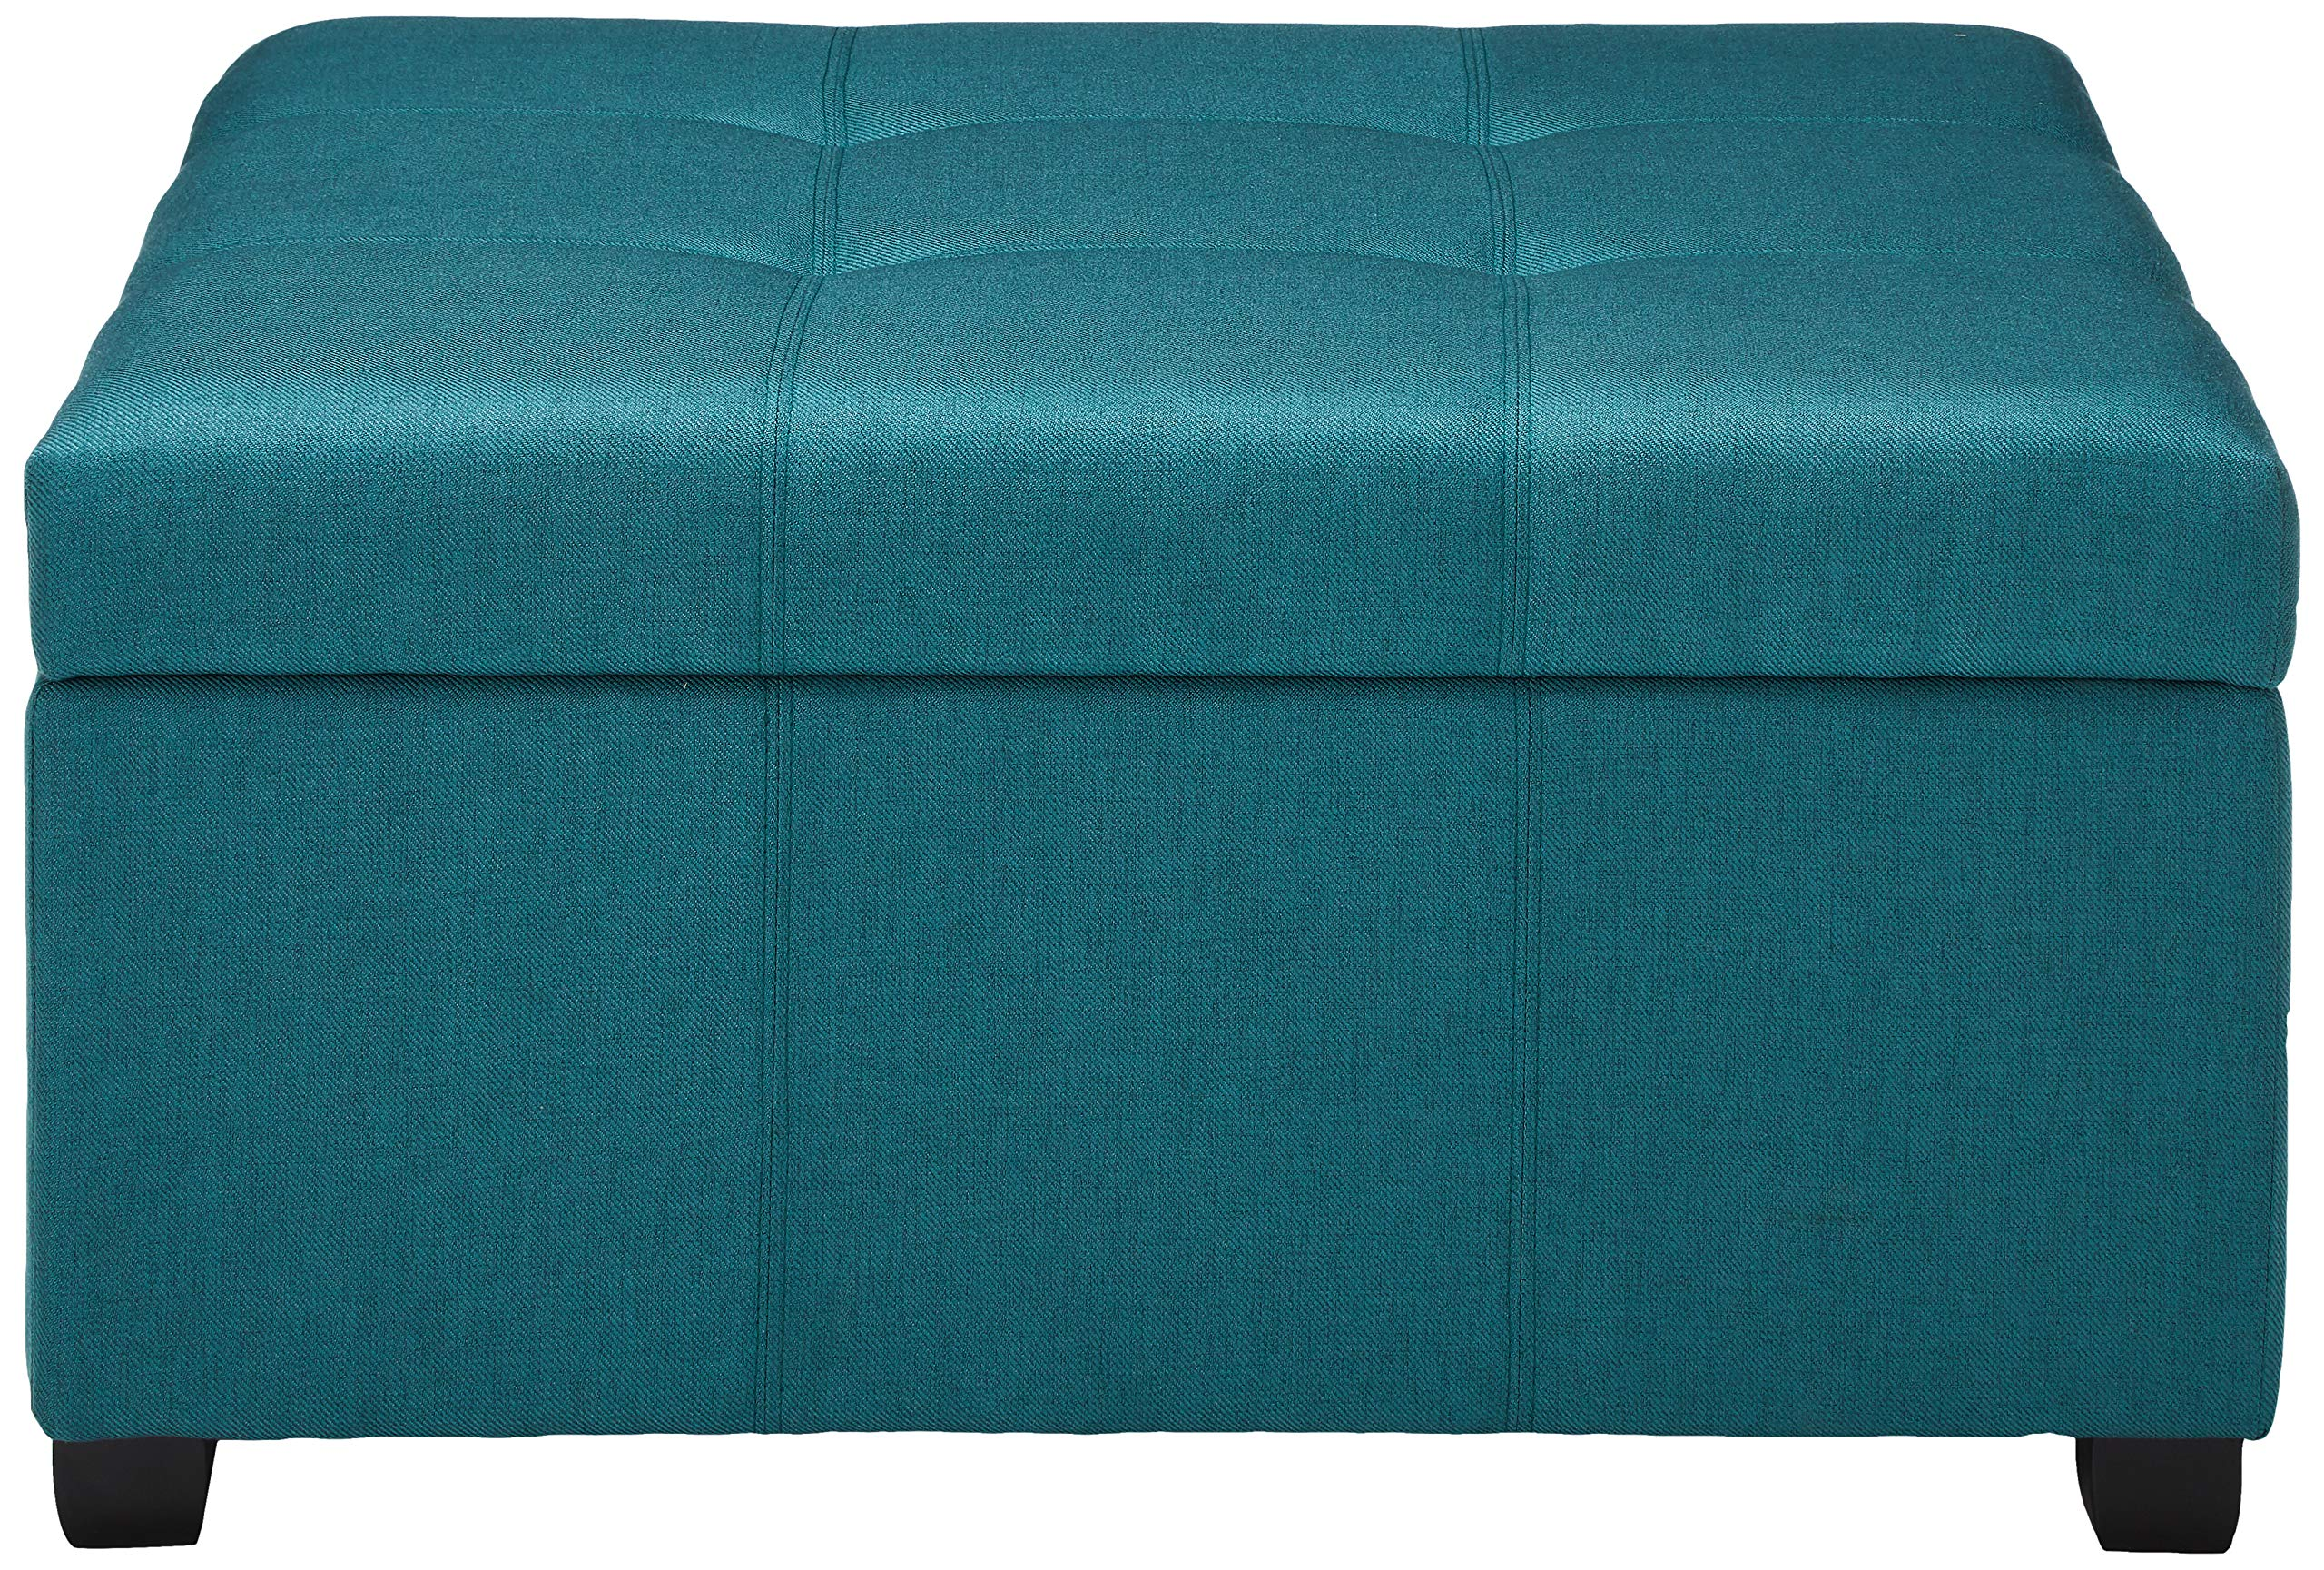 Christopher Knight Home 299736 Living Carlyle Dark Teal Fabric Storage Ottoman, 35. 00''D x 35. 00''W x 18. 50''H by Christopher Knight Home